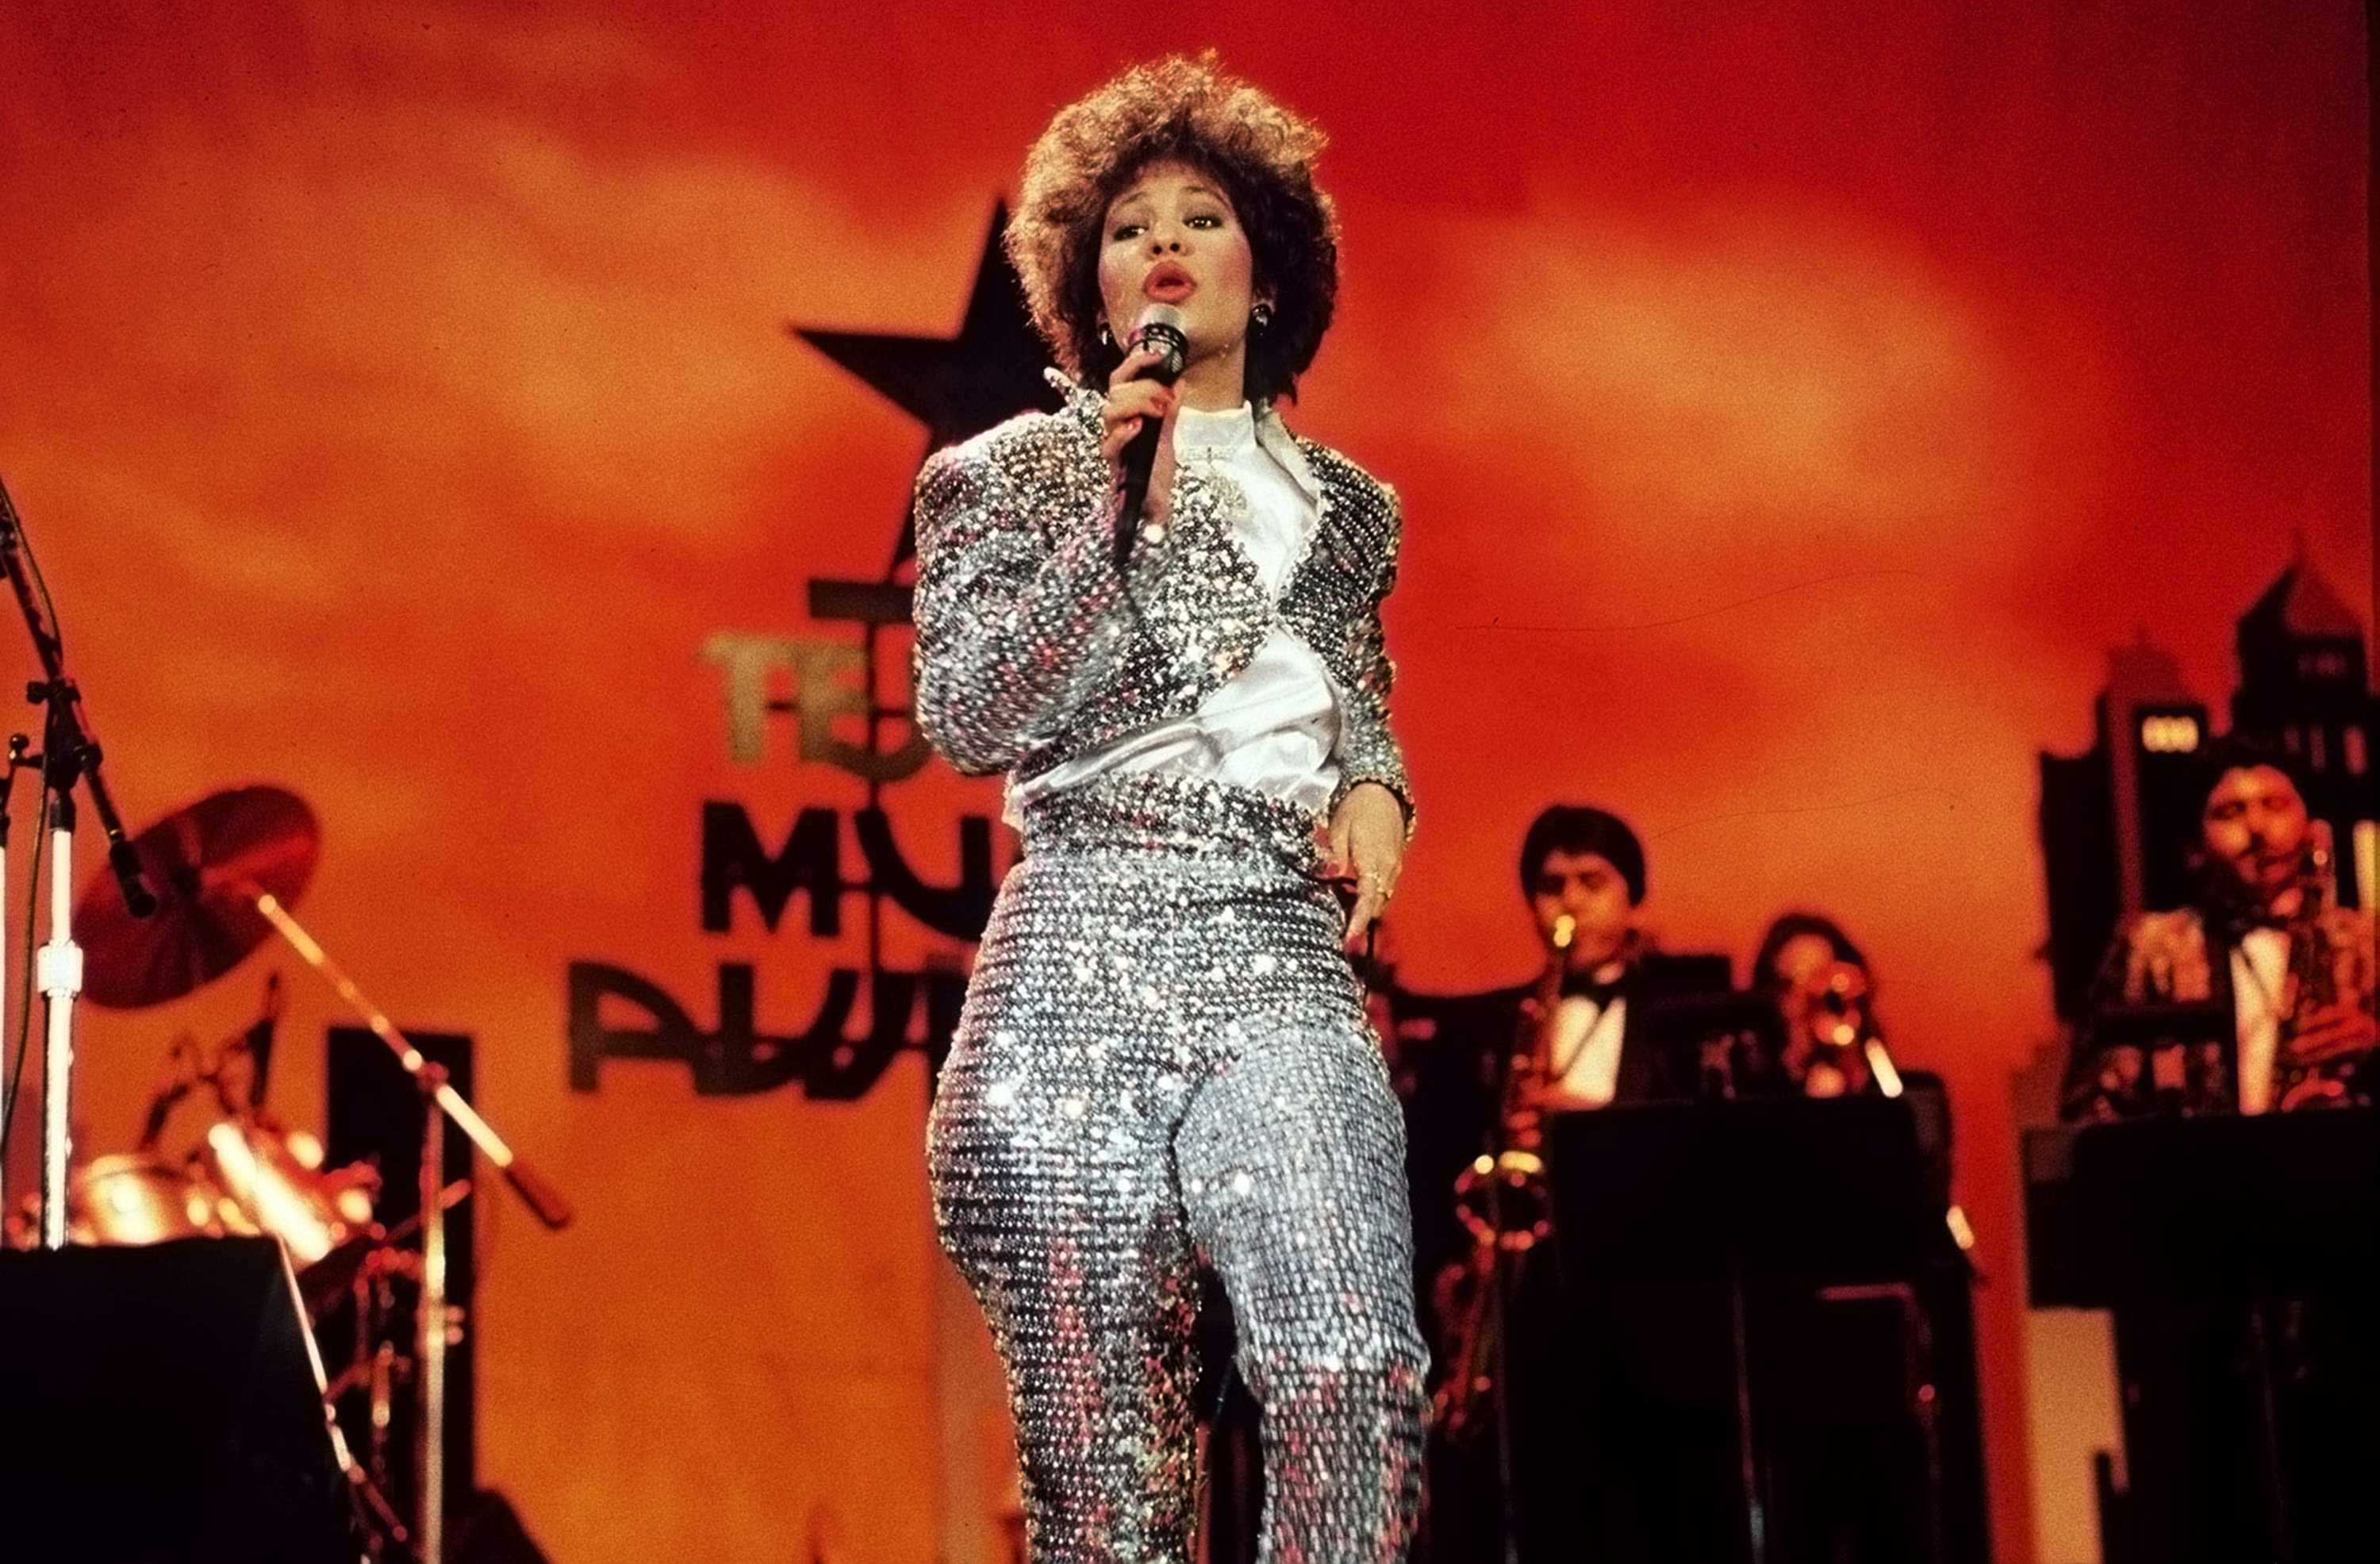 Selena Quinanilla performs during the Seventh Annual Tejano Music Awards on March 23, 1987 in San Antonio, Texas. Mac Cosmetics just announced plans for a Selena makeup line after an online campaign drummed up 37,000 signatures. (Philip Barr/San Antonio Express-News/Zuma Press/TNS)